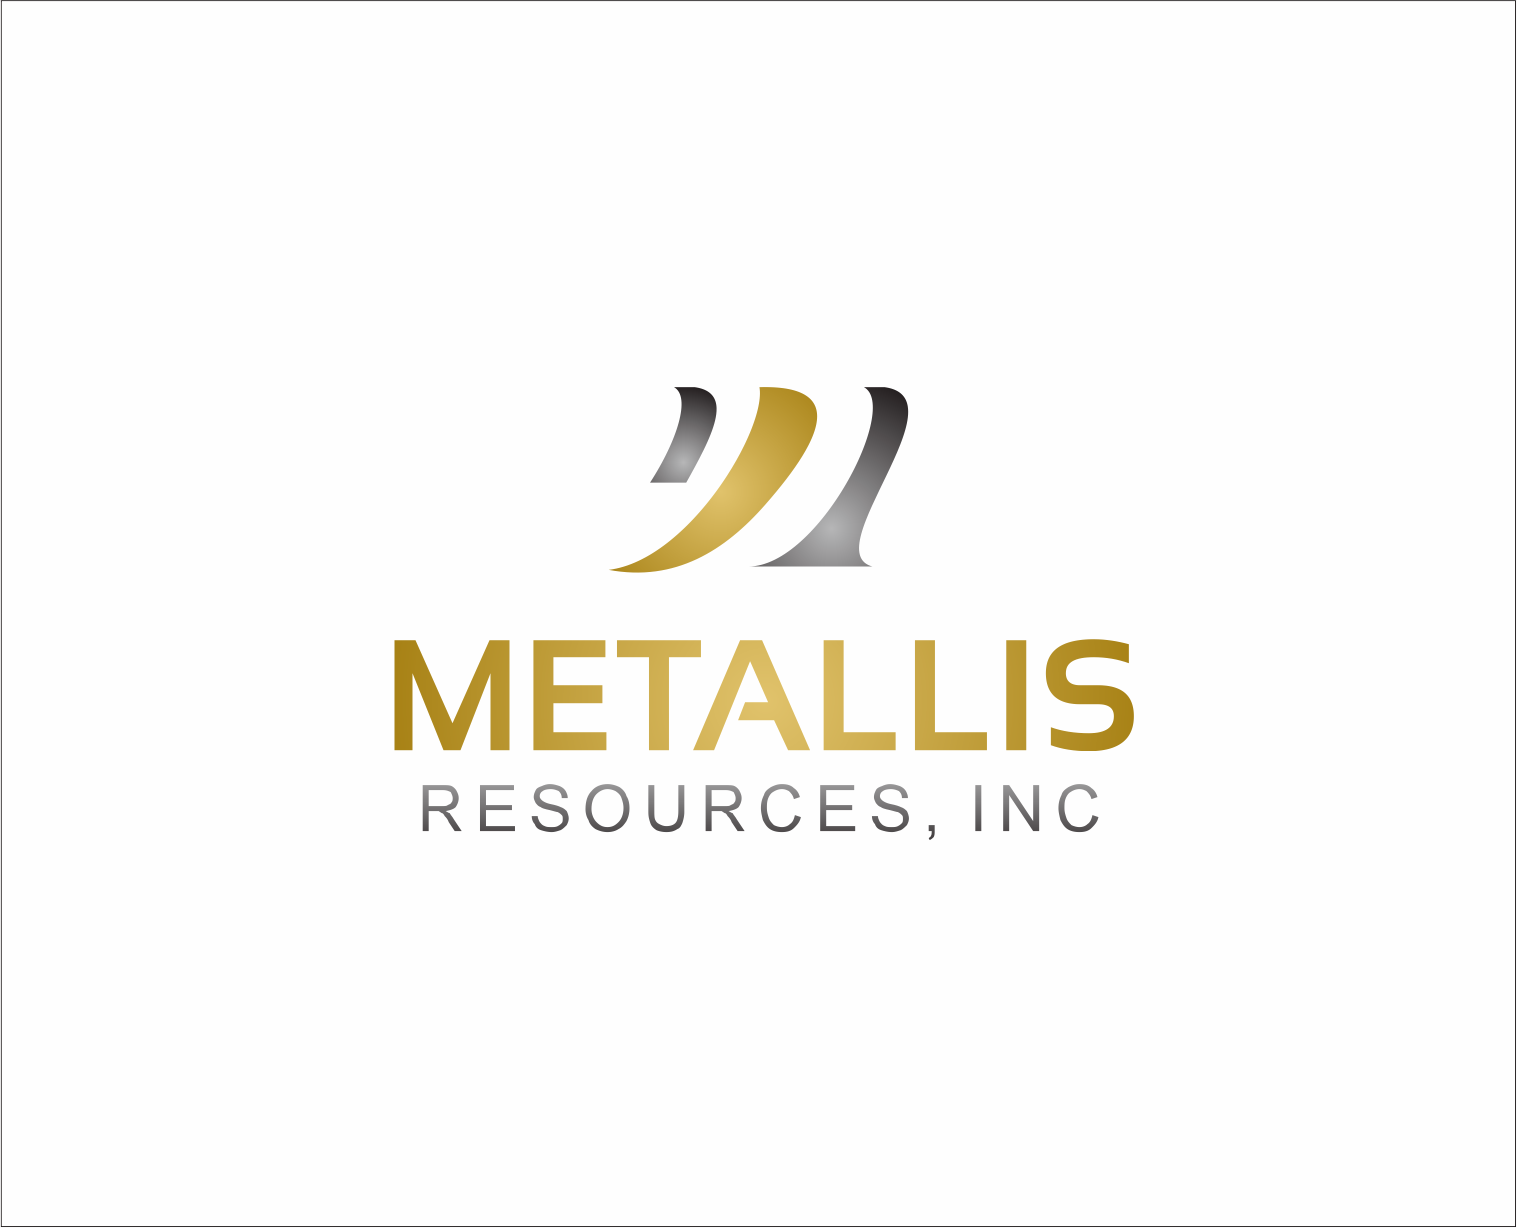 Logo Design by Armada Jamaluddin - Entry No. 140 in the Logo Design Contest Metallis Resources Inc Logo Design.